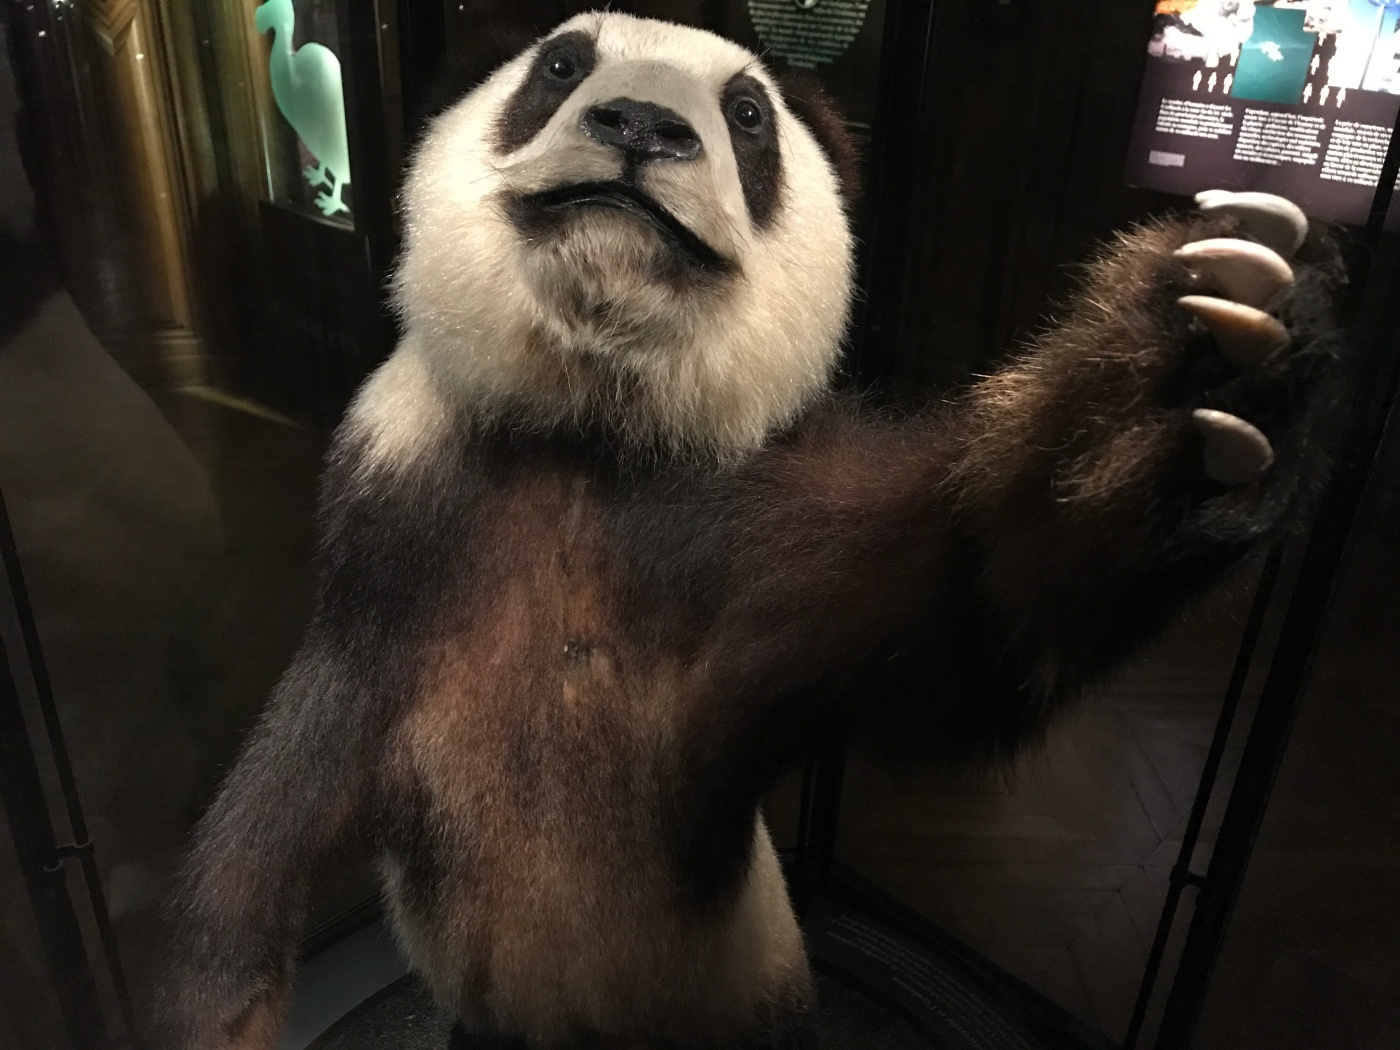 Li Li - This Rare Grand Panda Was Once Owned by Président Pompidou and is Now on Display in the Grand Galerie de L'Évolution Which is Part of the Muséum National D'Histoire Naturelle in Paris, France